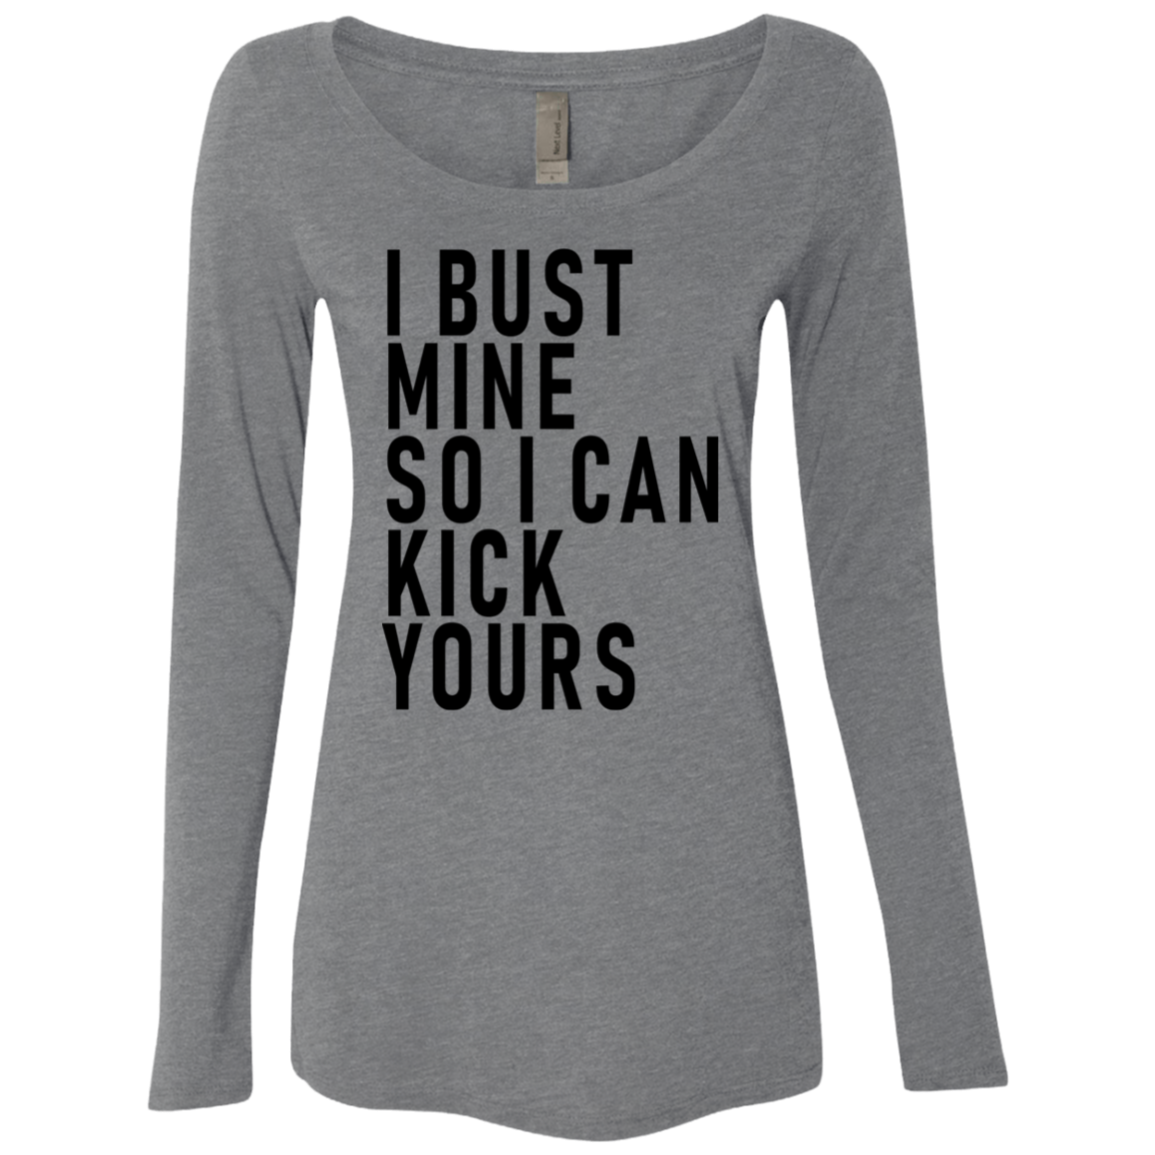 I Bust Mine So I Can Kick Yours Women's Long Sleeve Tee